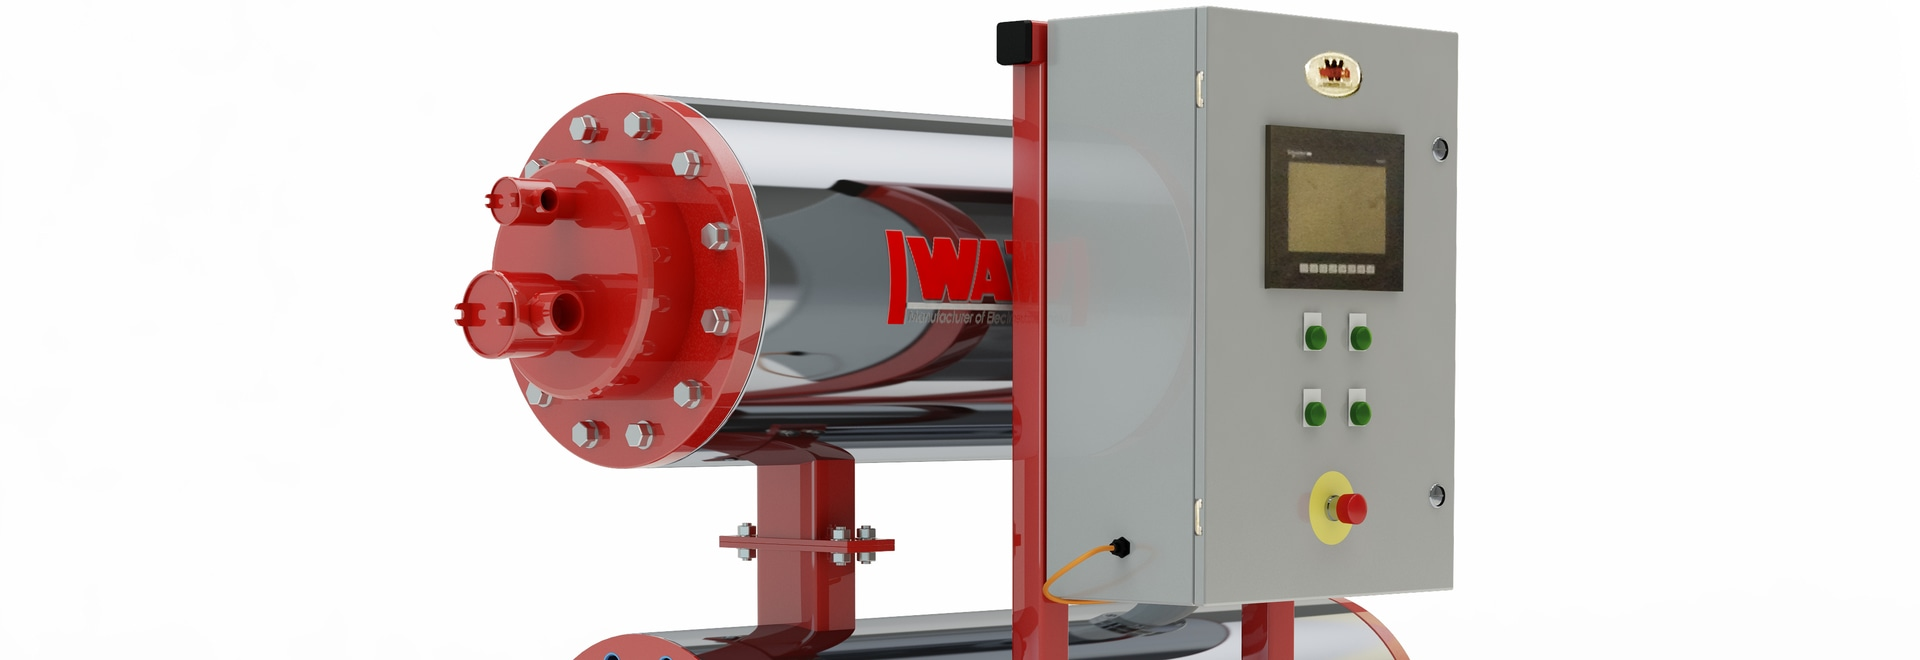 APPLICATIONS OF CIRCULATION HEATERS IN THE AGRICULTURE INDUSTRY